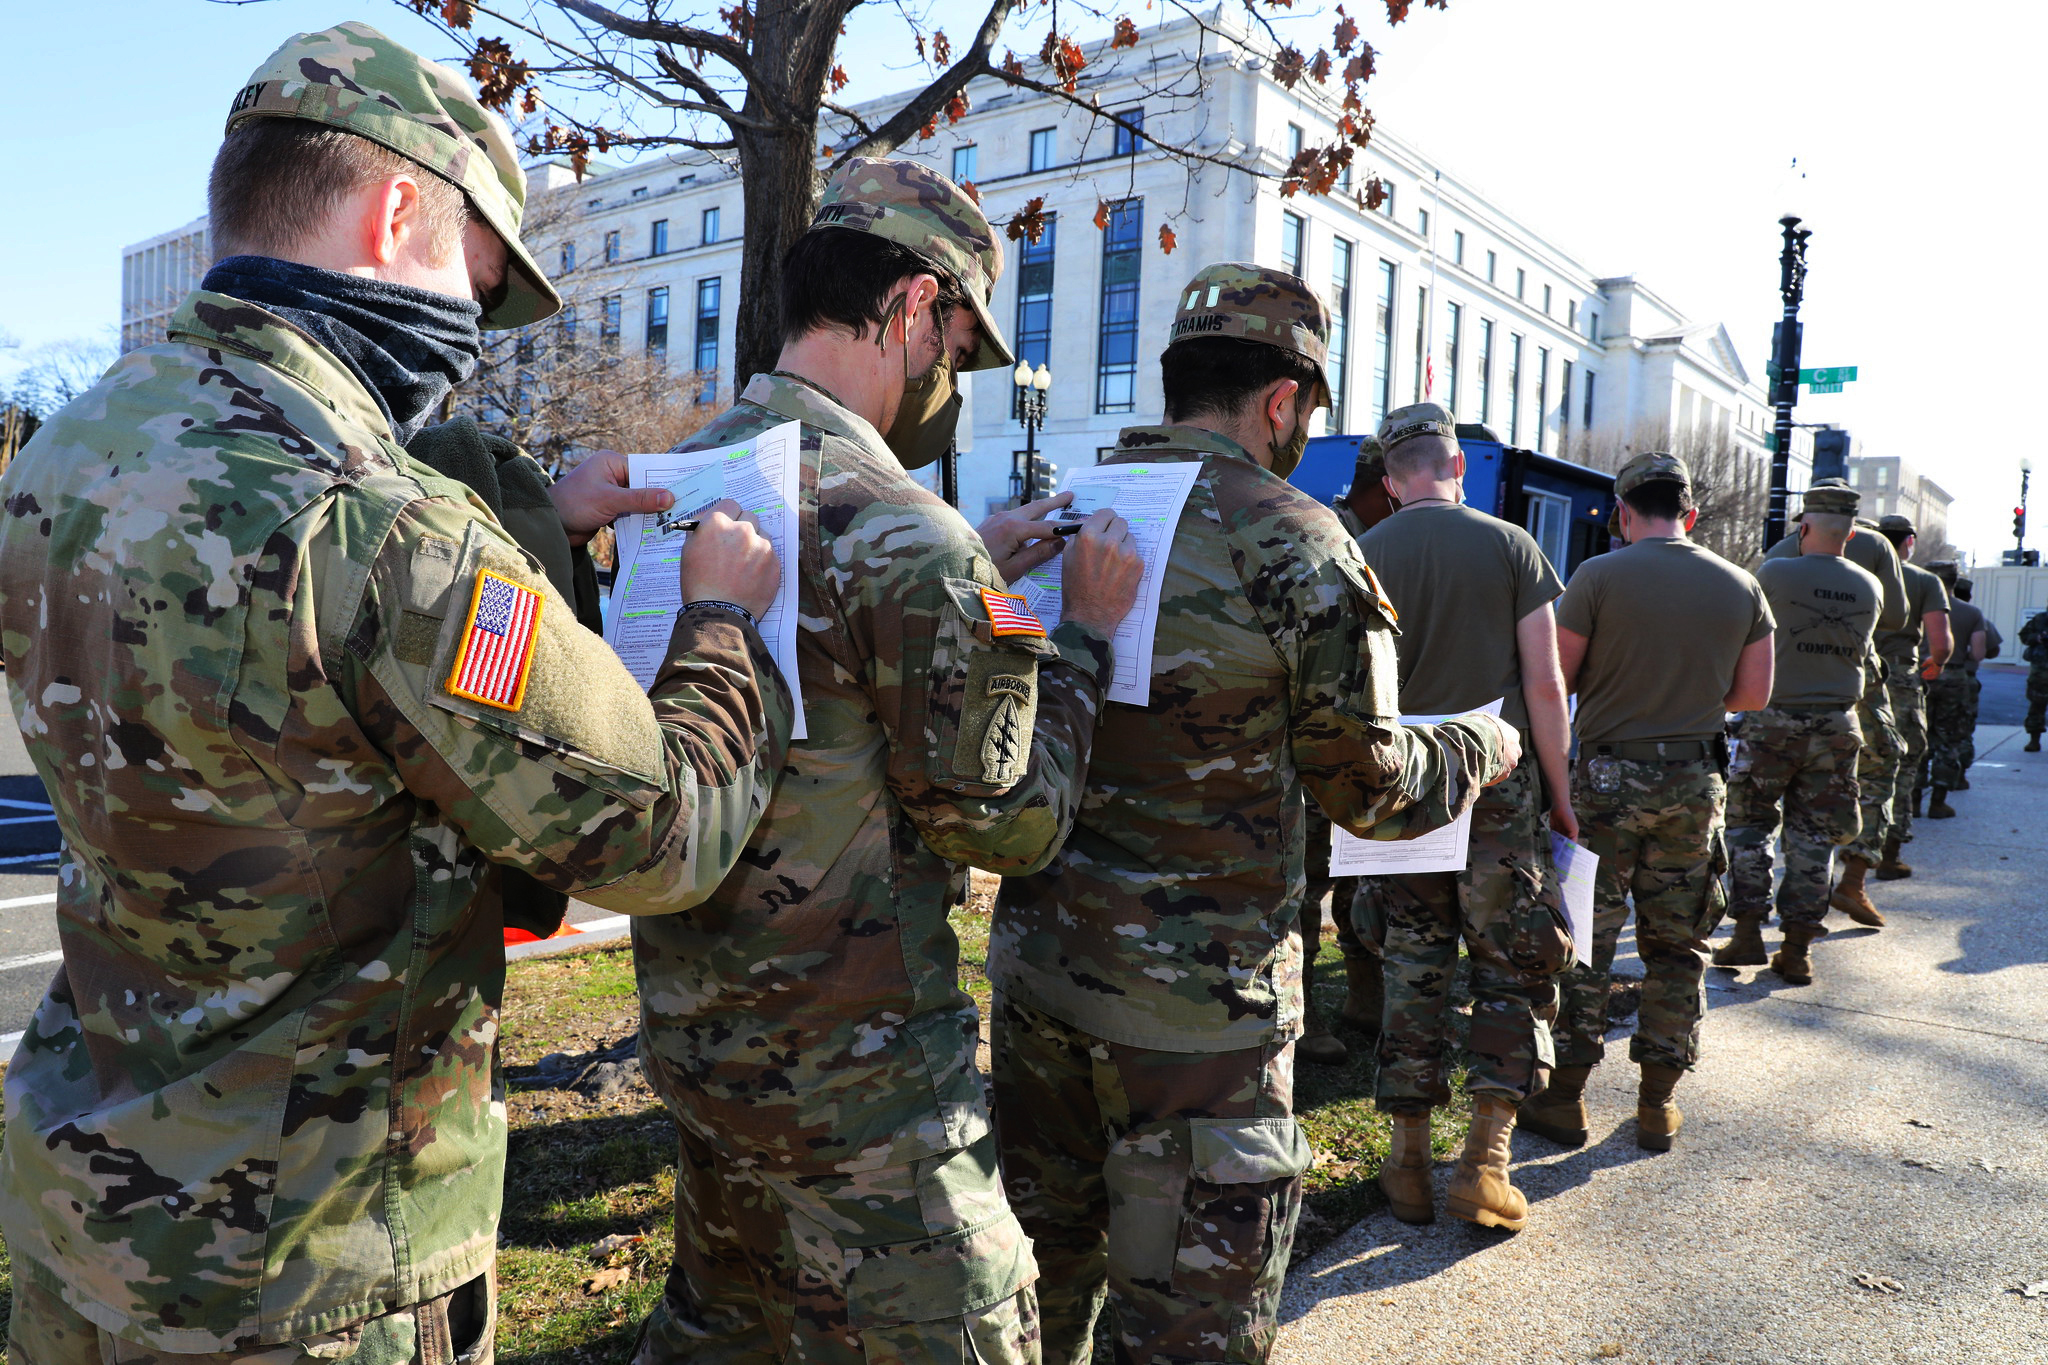 Soldiers in the Maryland Army National Guard use the back of the soldier in front of them to fill out their medical paperwork to receive the COVID-19 vaccine at the U.S. Capitol Complex in Washington on Jan. 14, 2021. (Sgt. Chazz Kibler/National Guard)